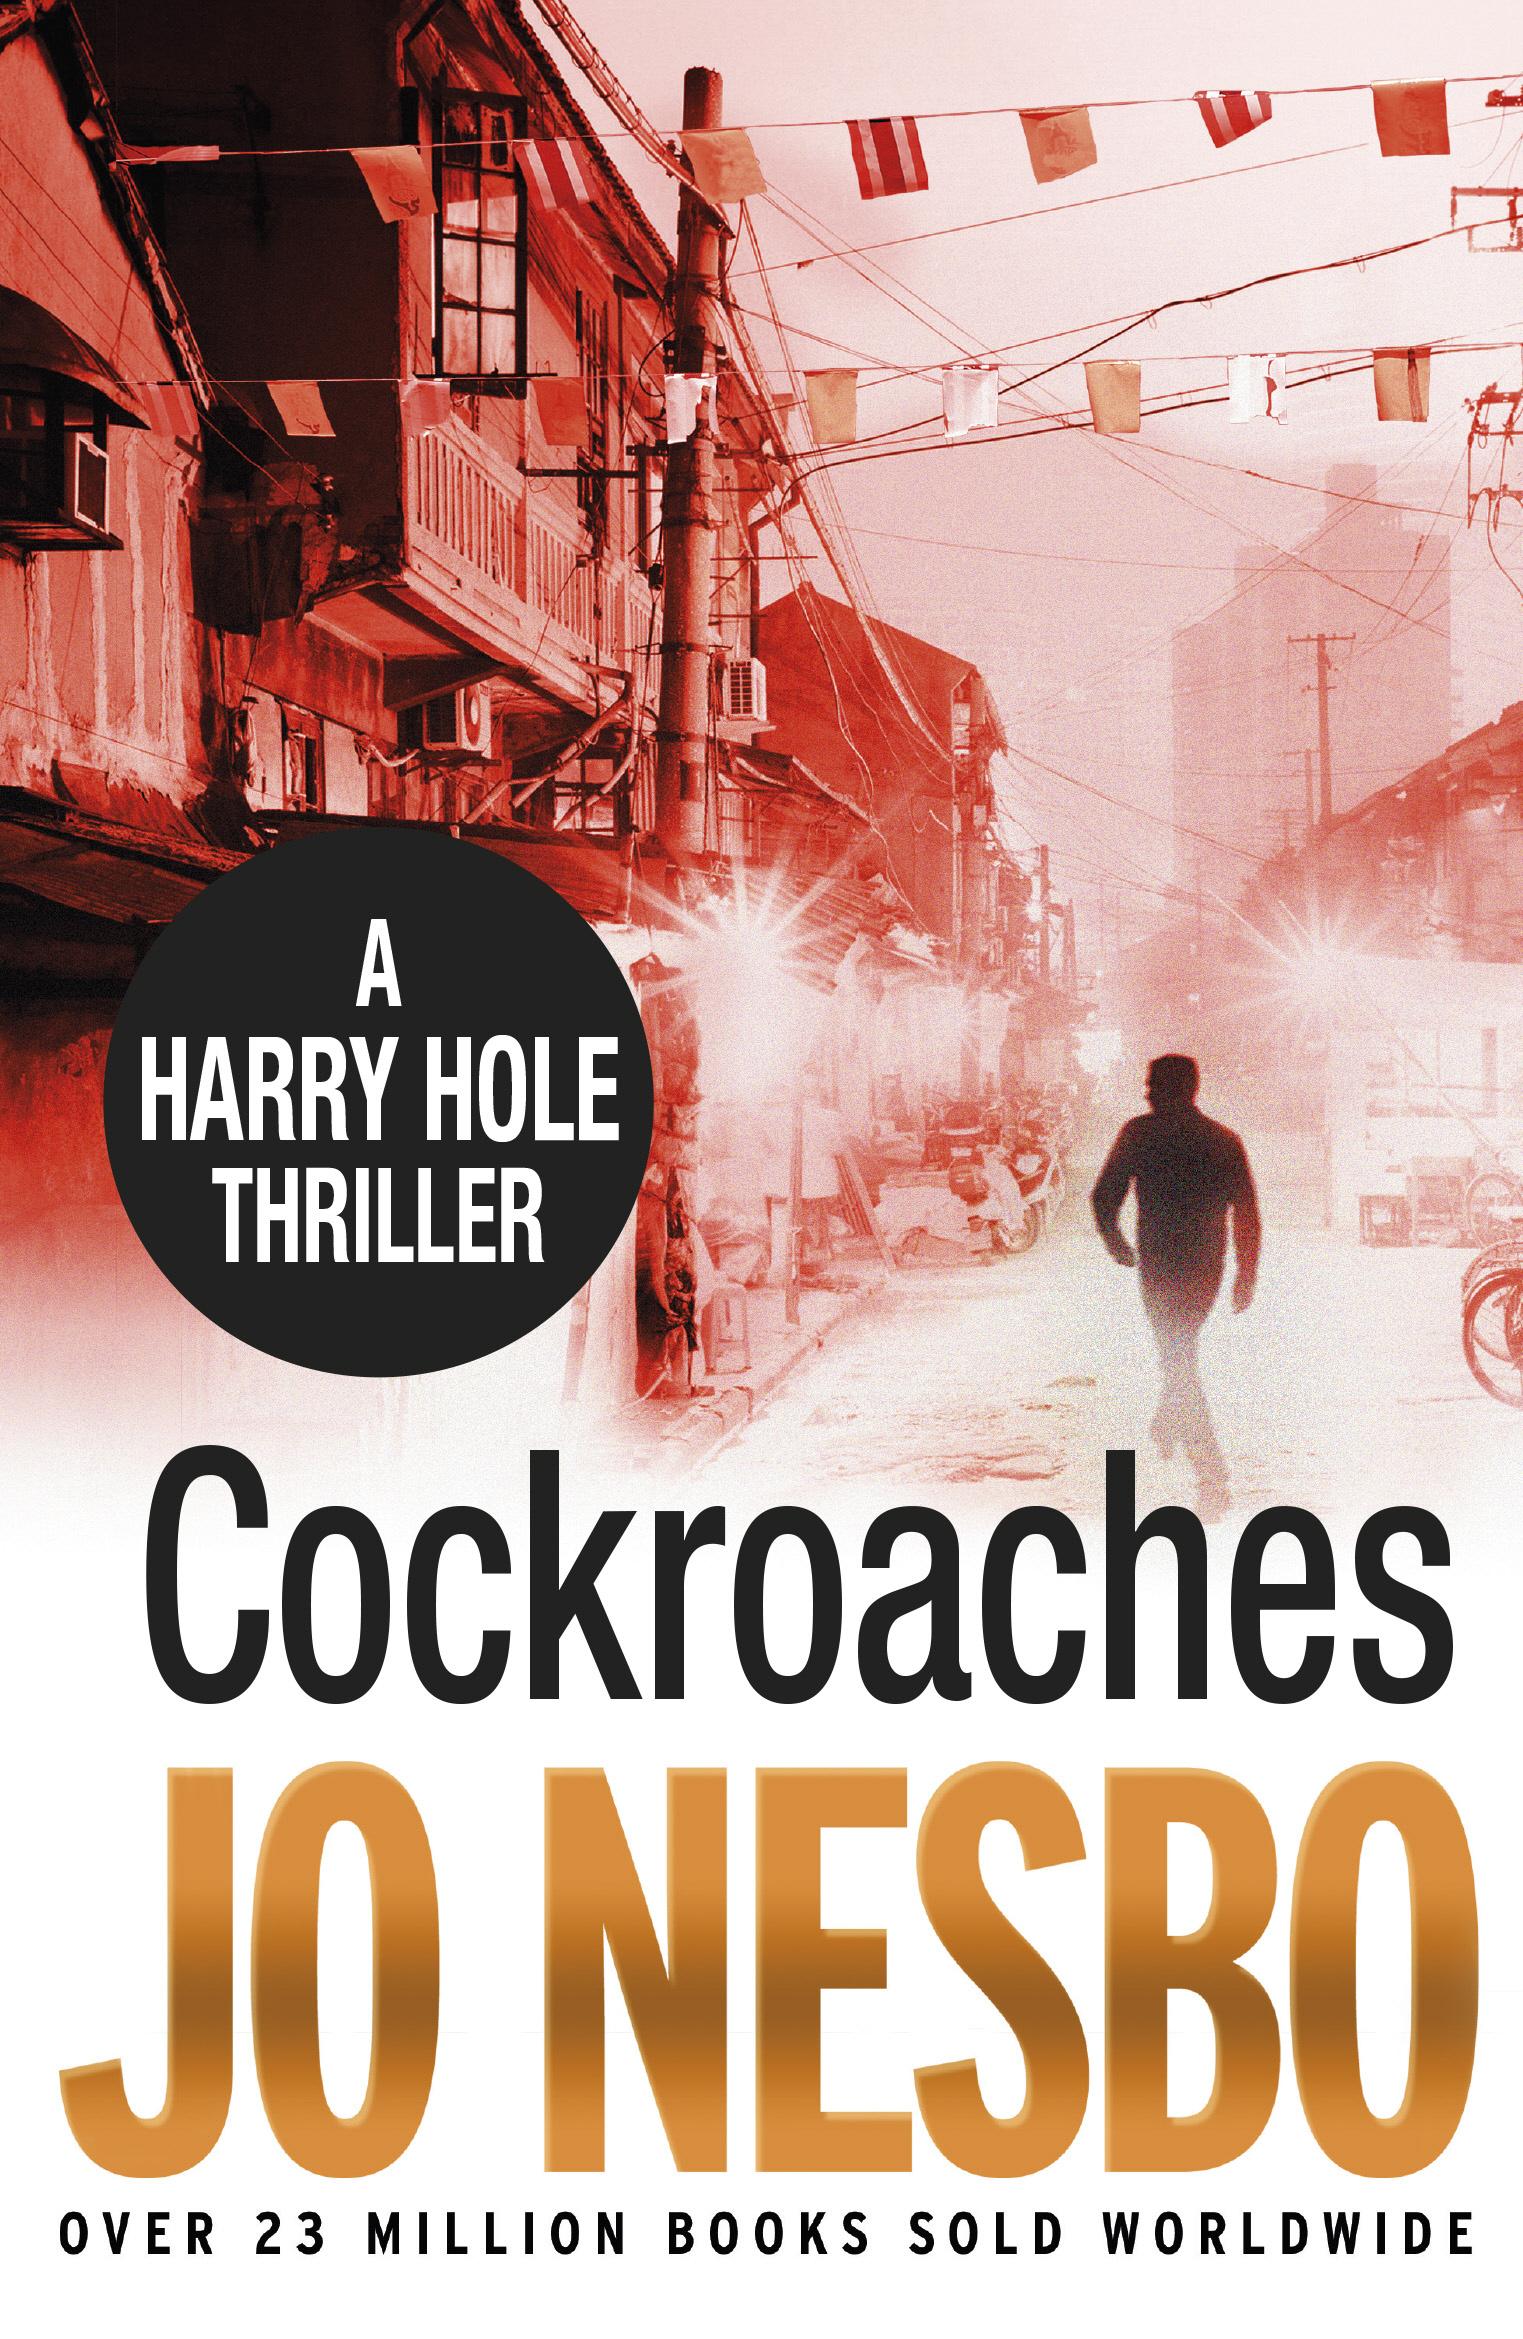 Cockroaches An early Harry Hole case